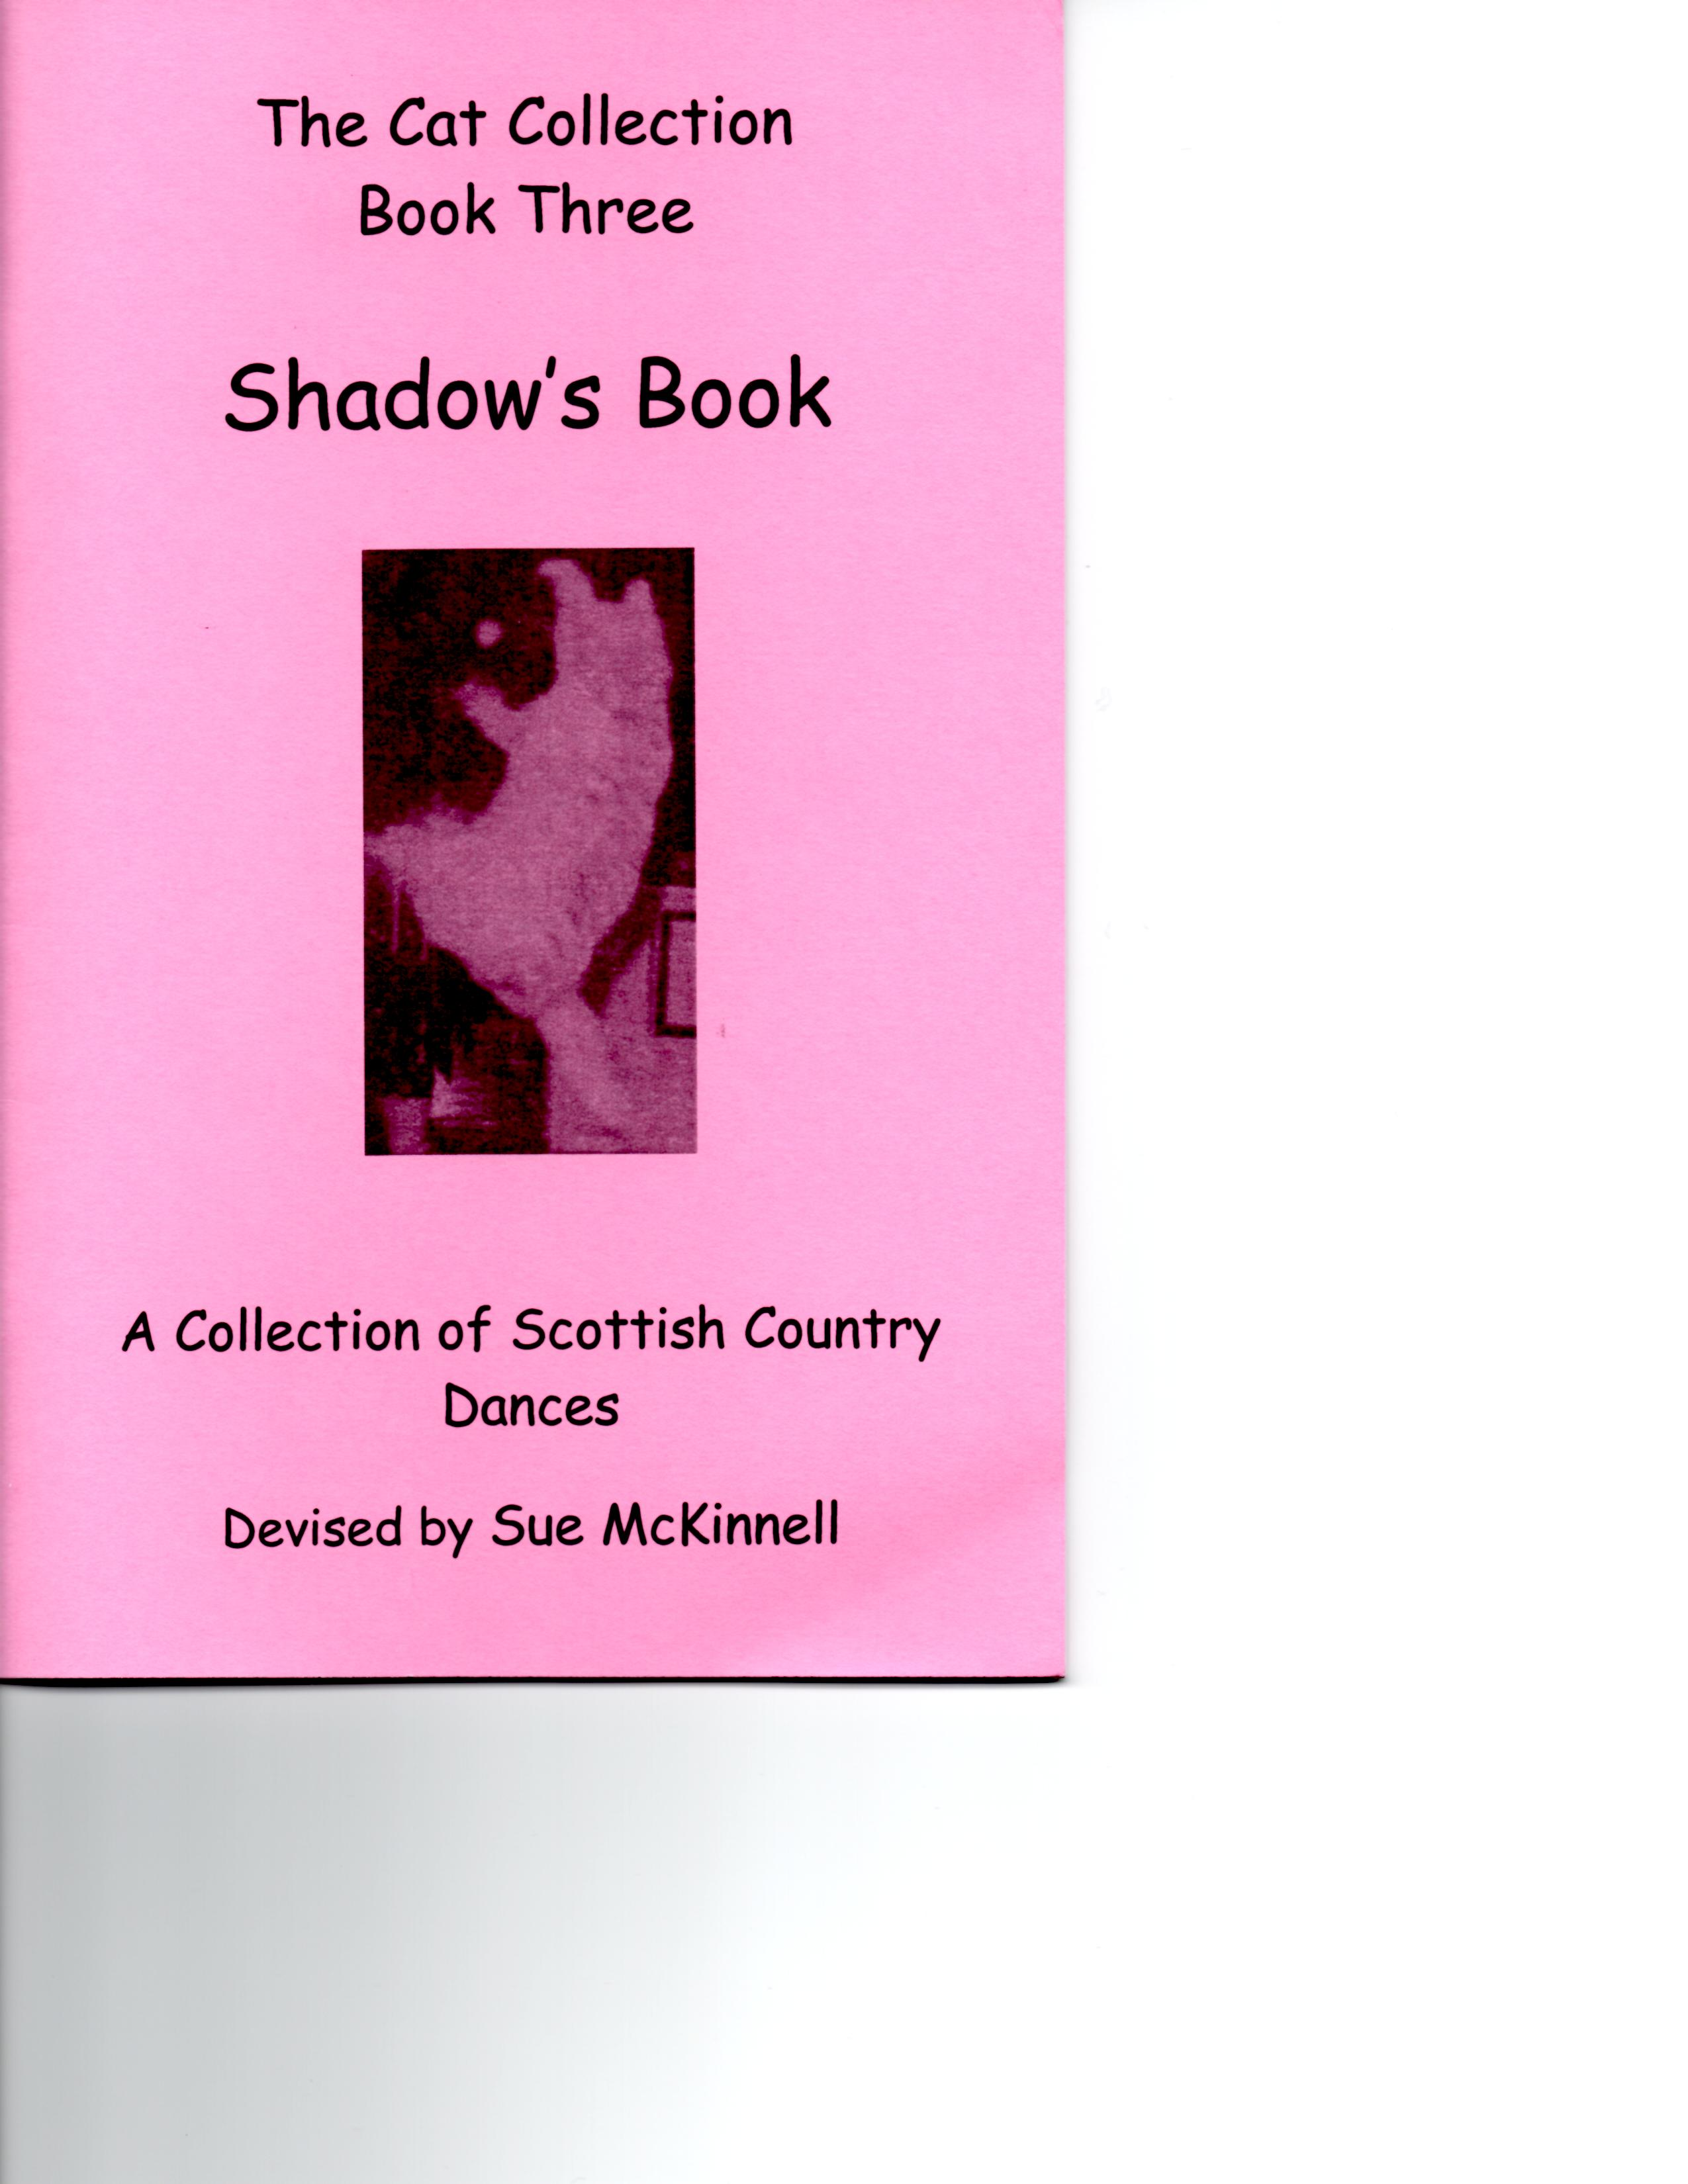 The Cat Collection Book Three - Shadow's Book